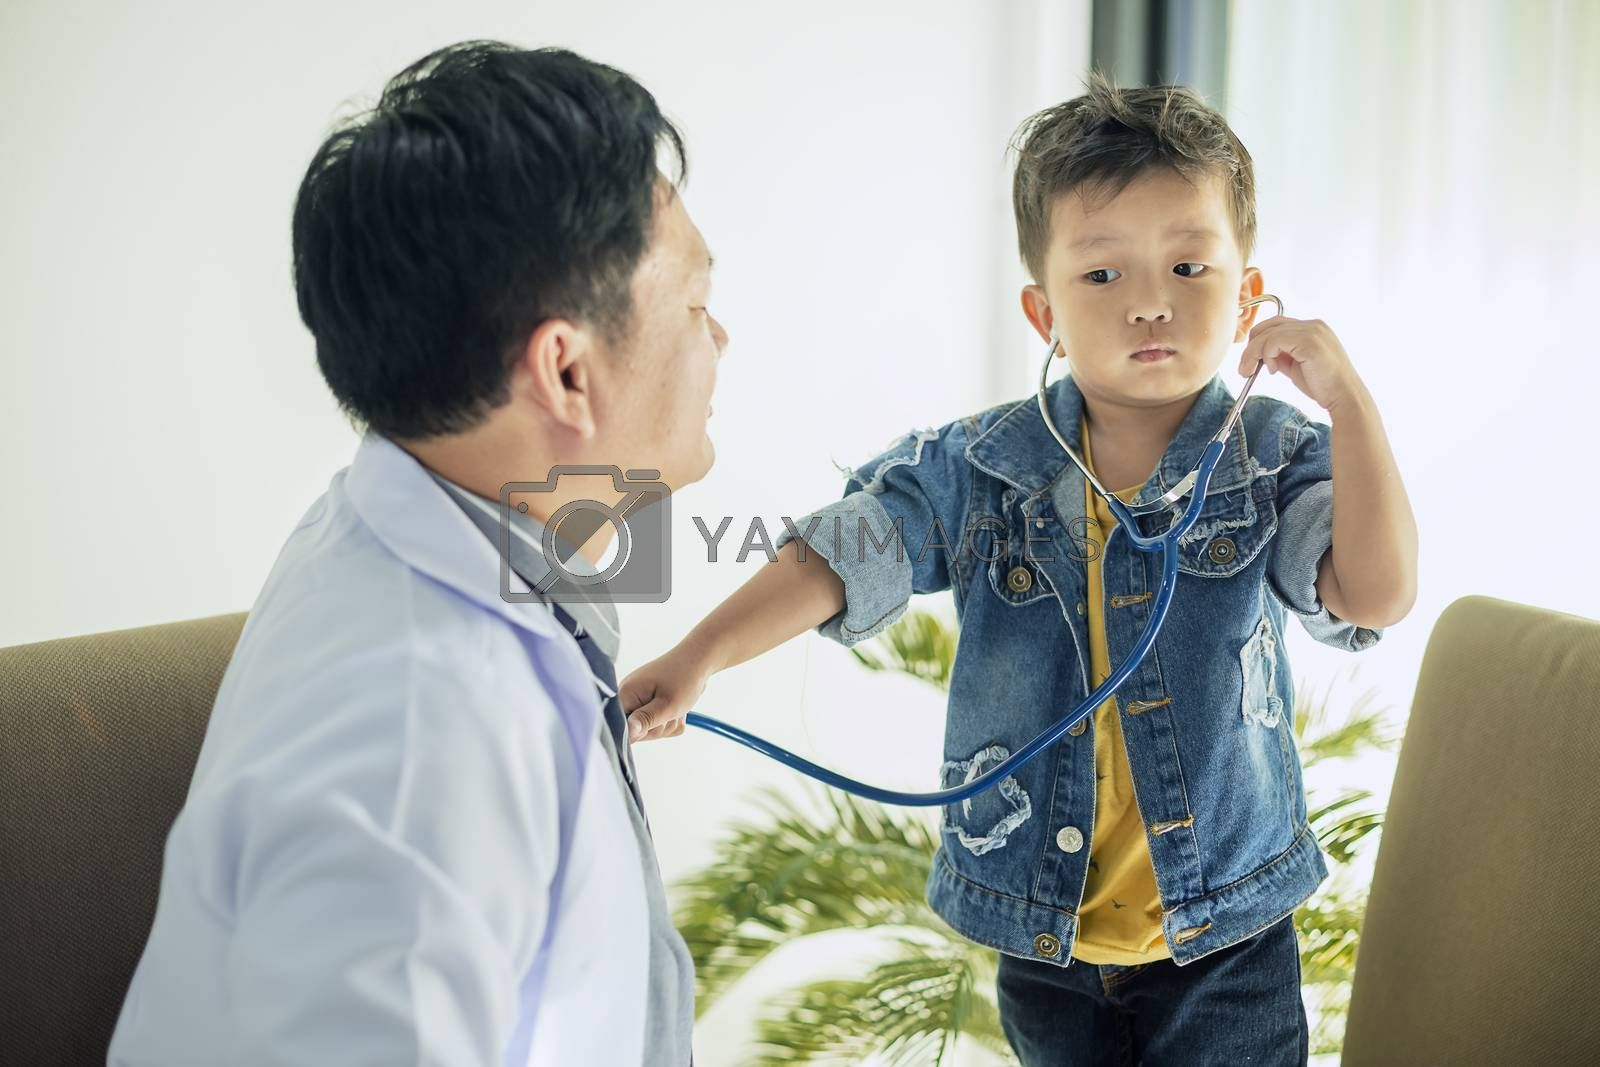 The image of a cute little boy goes to the doctor and is teasing the doctor using a stethoscope to listen to the doctor's heart.